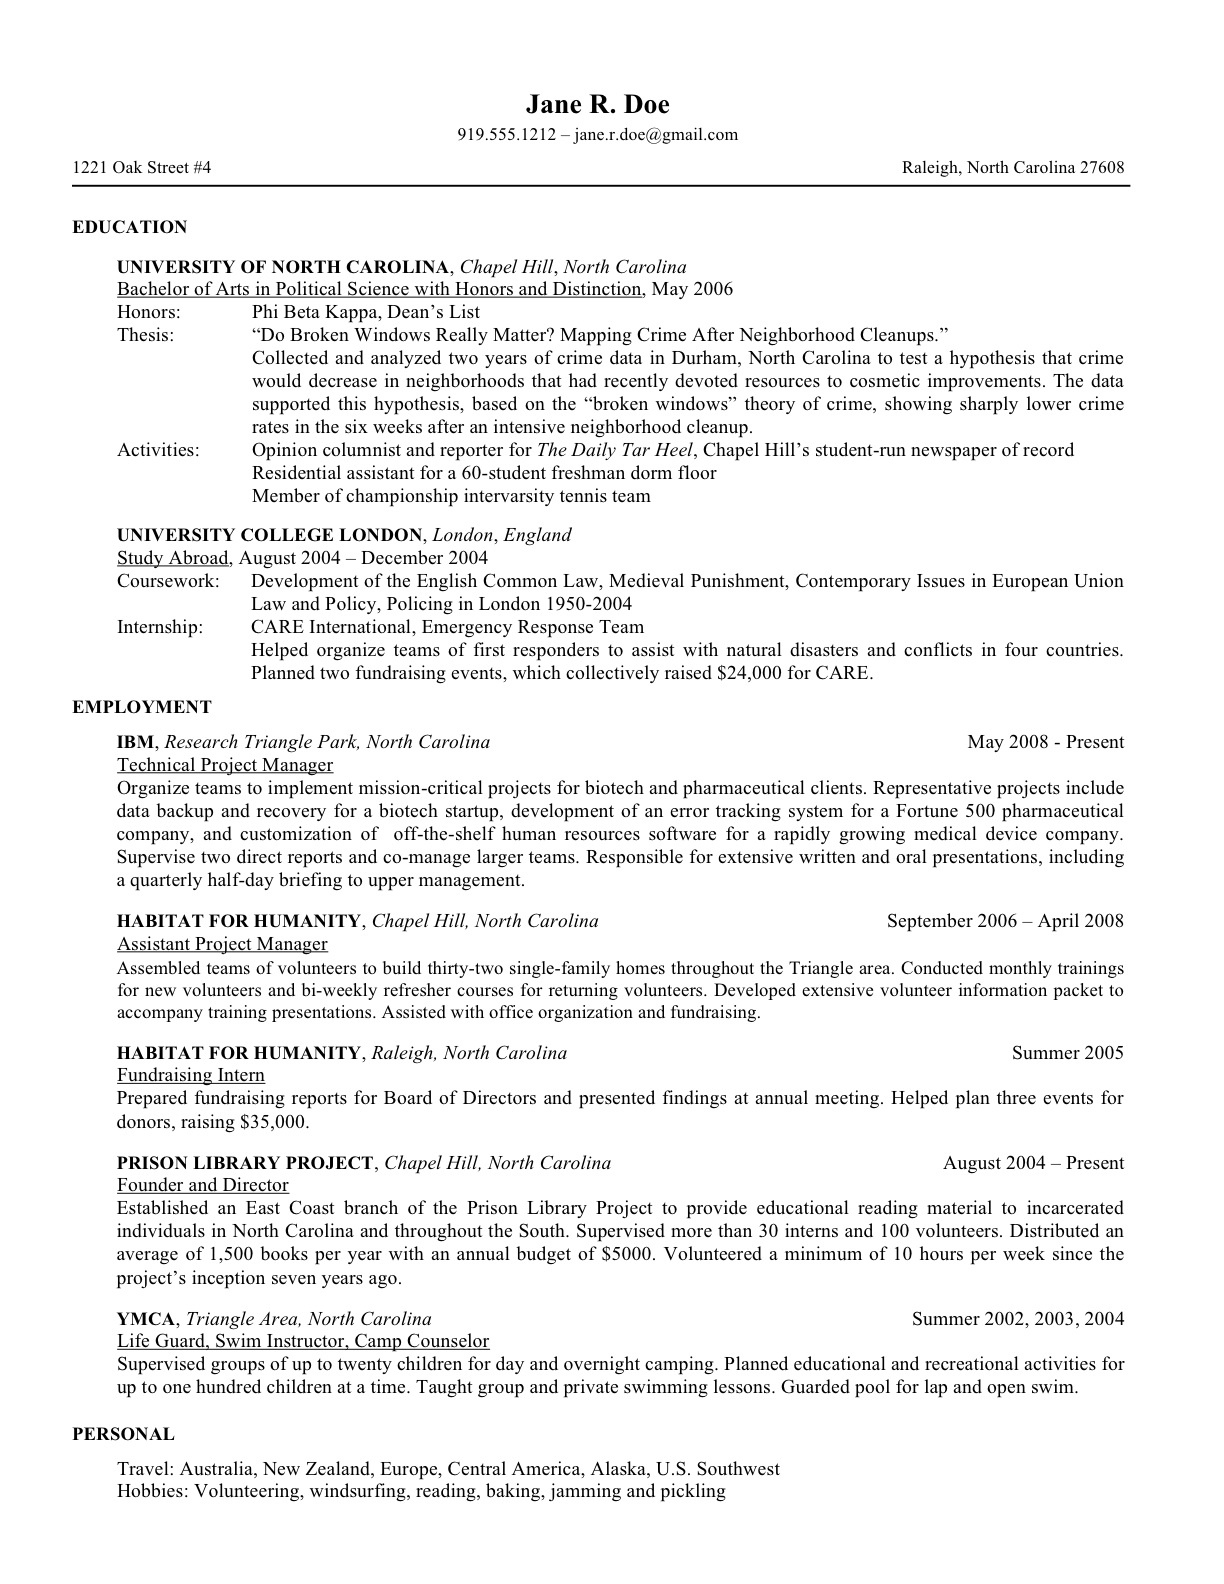 law school resume templates prepping your for of university at listing classes on Resume Listing Classes On Resume